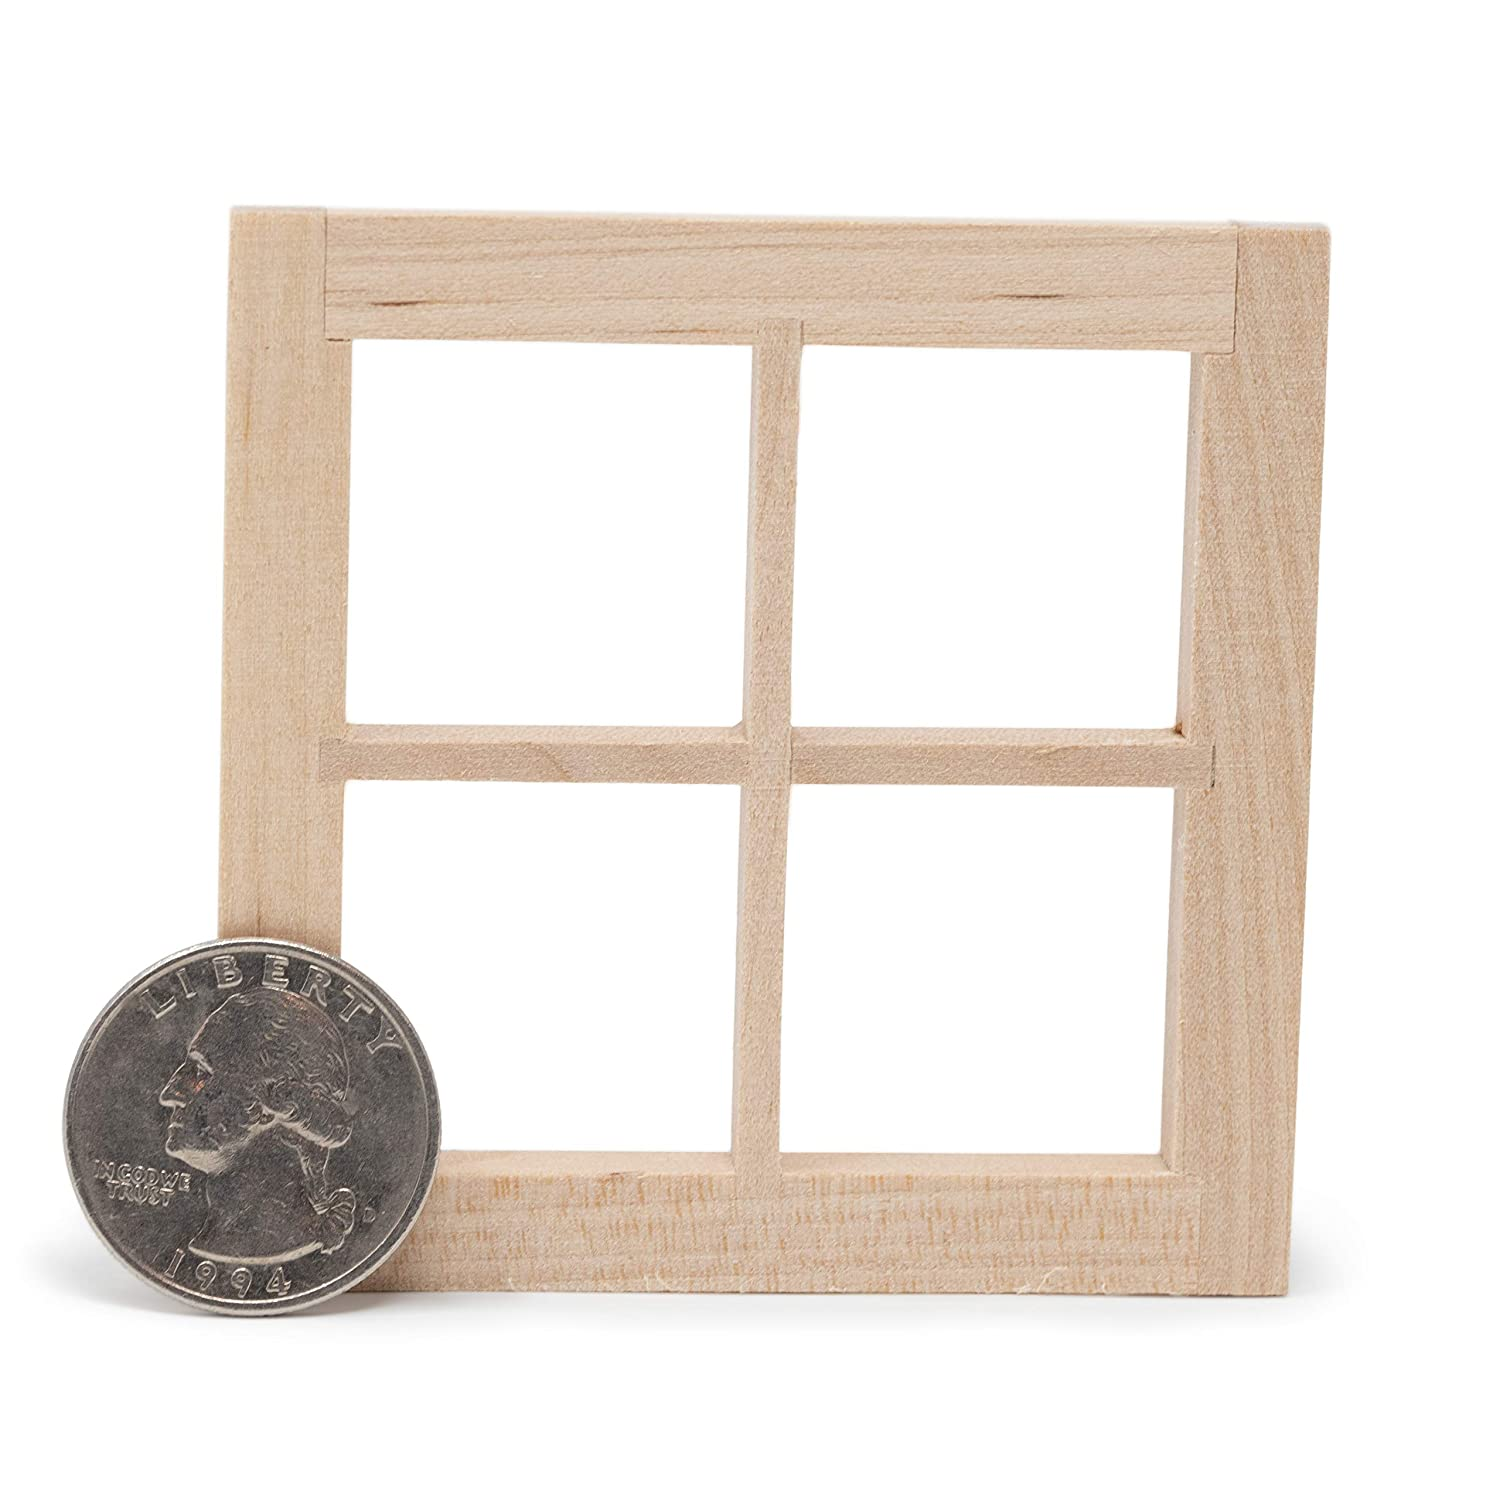 American Heritage Industries Dollhouse Windows- Pair of Wooden Dollhouse Windows Accurately Scale 1:12 Windows for Your Dollhouse or Model Town an Product with Four Panes